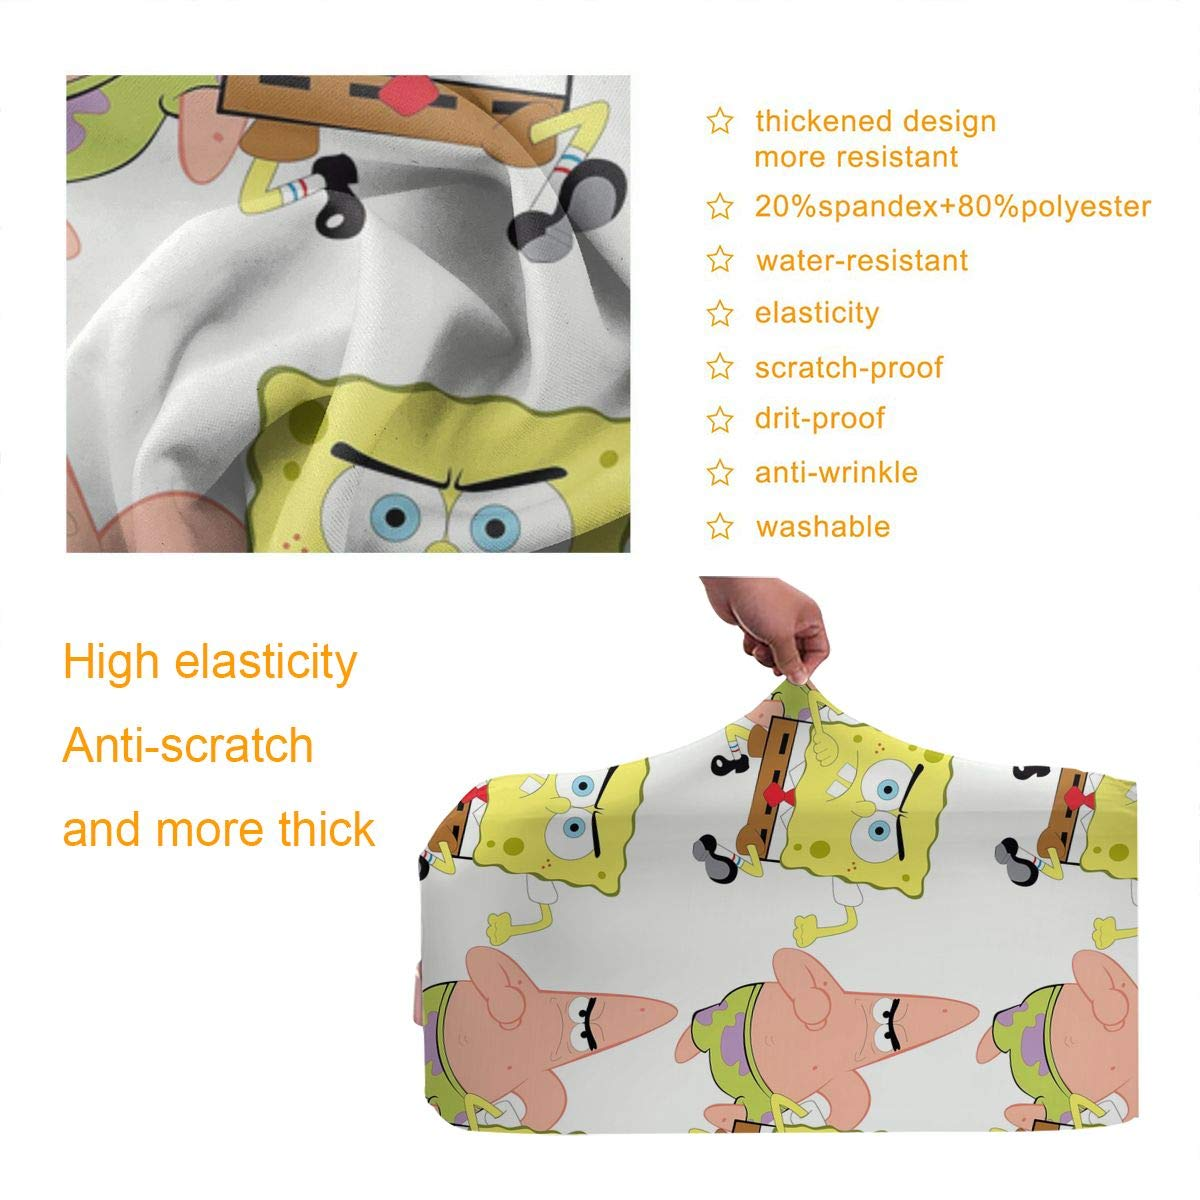 Sponge-bob Cartoon Patrick Star Design Travel Suitcase Protector Anti-scratch Washable Dust Thicken Elasticity Cover Travel Luggage Cover